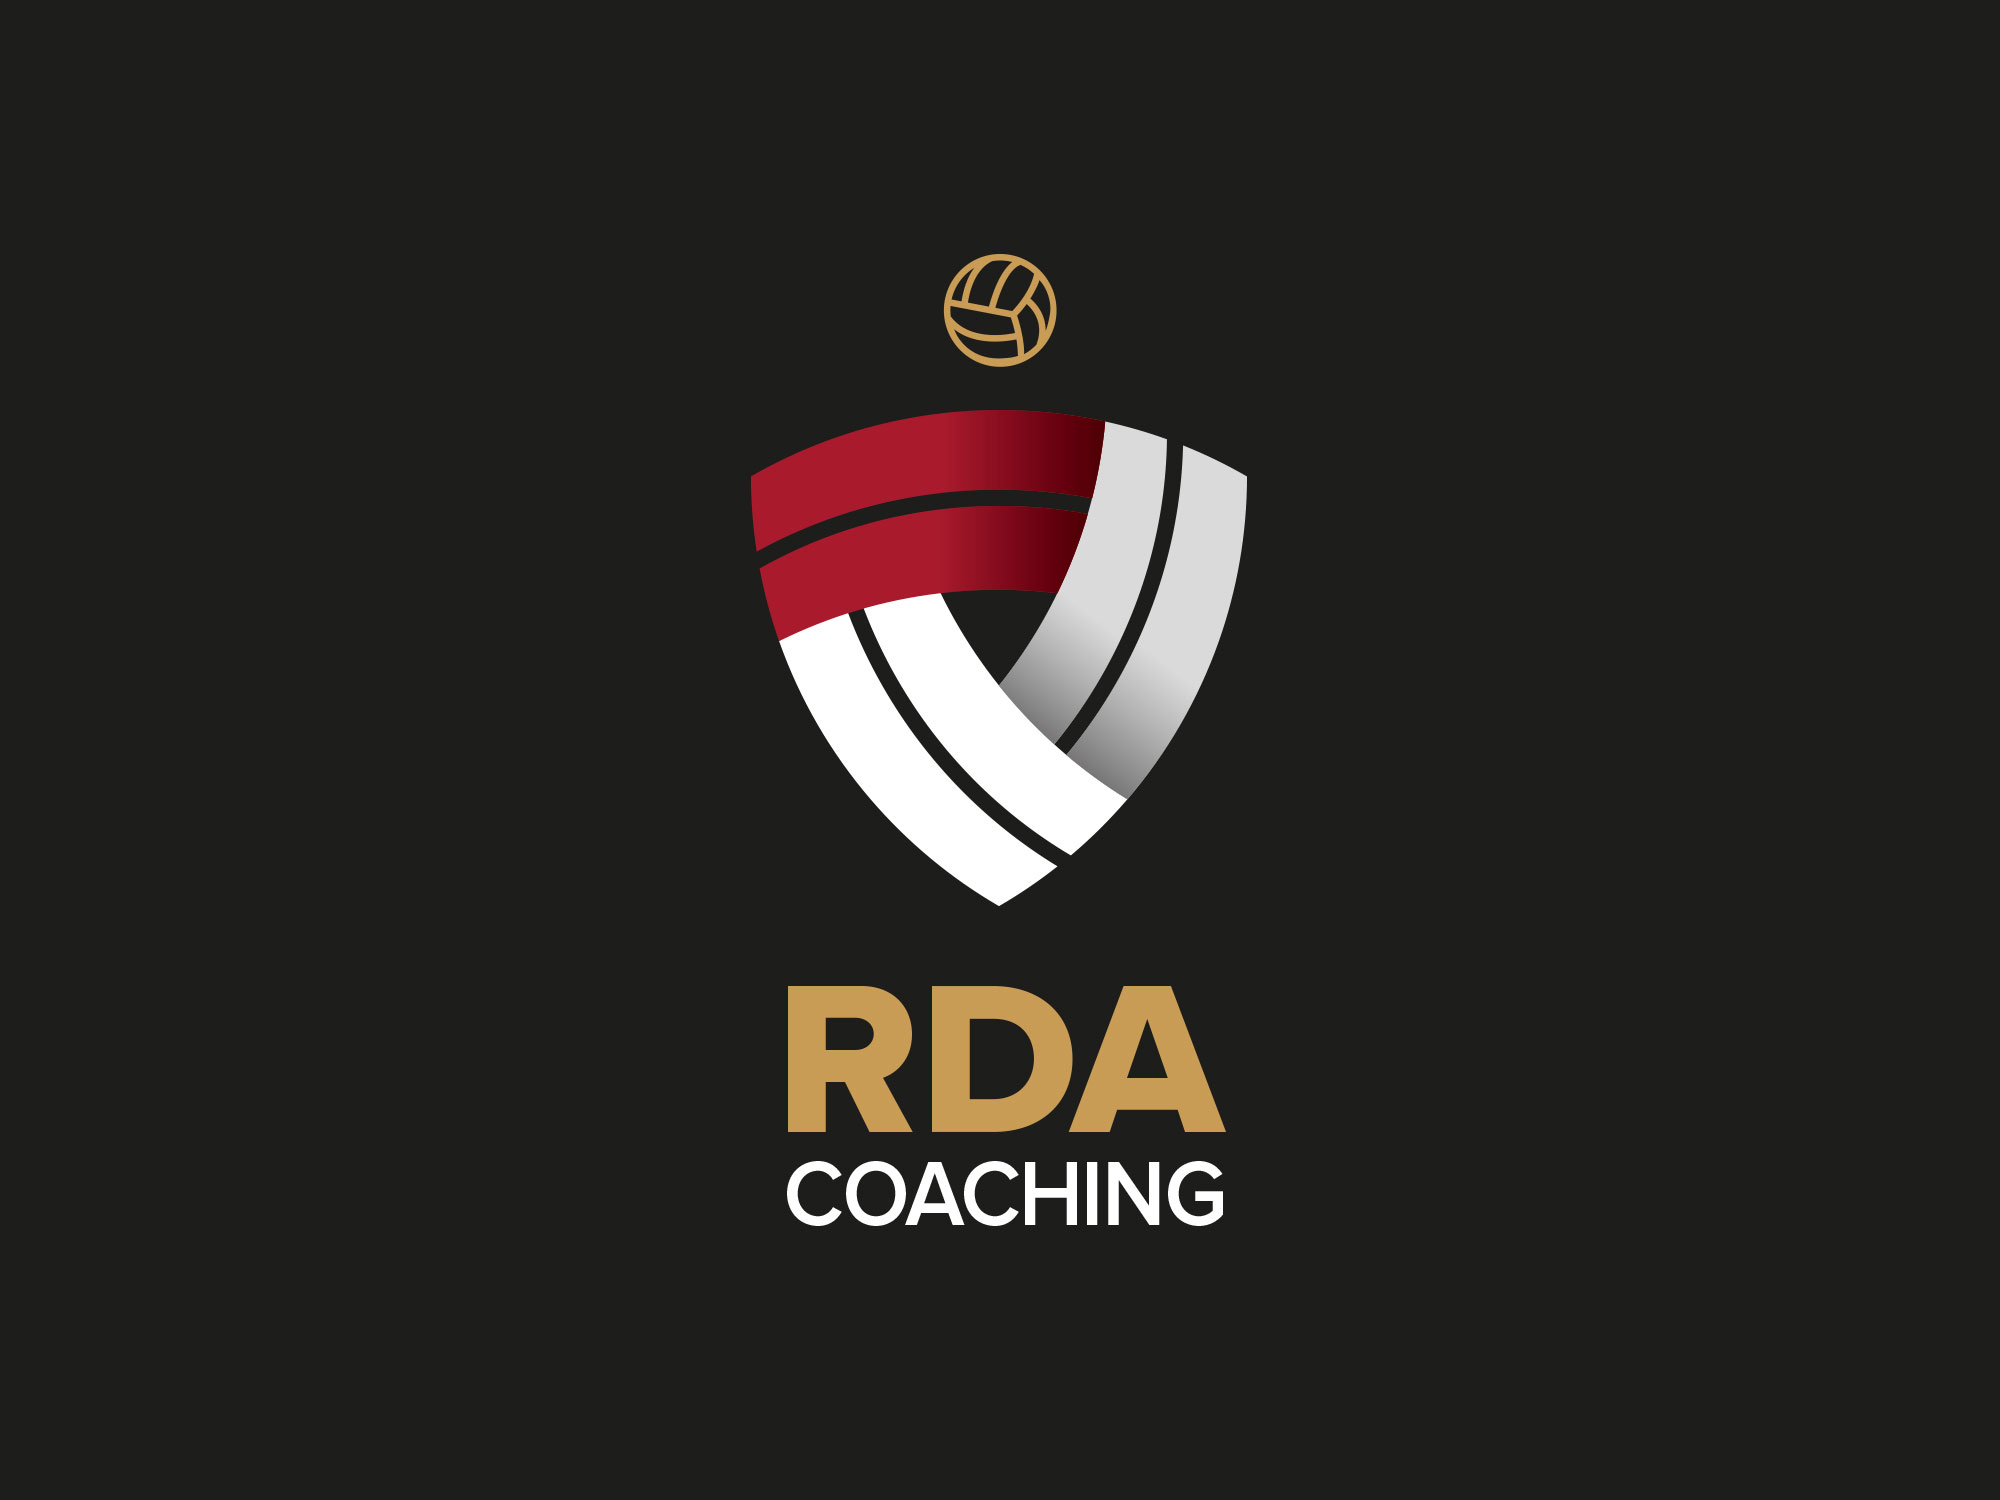 RDA Coaching Logo on Black